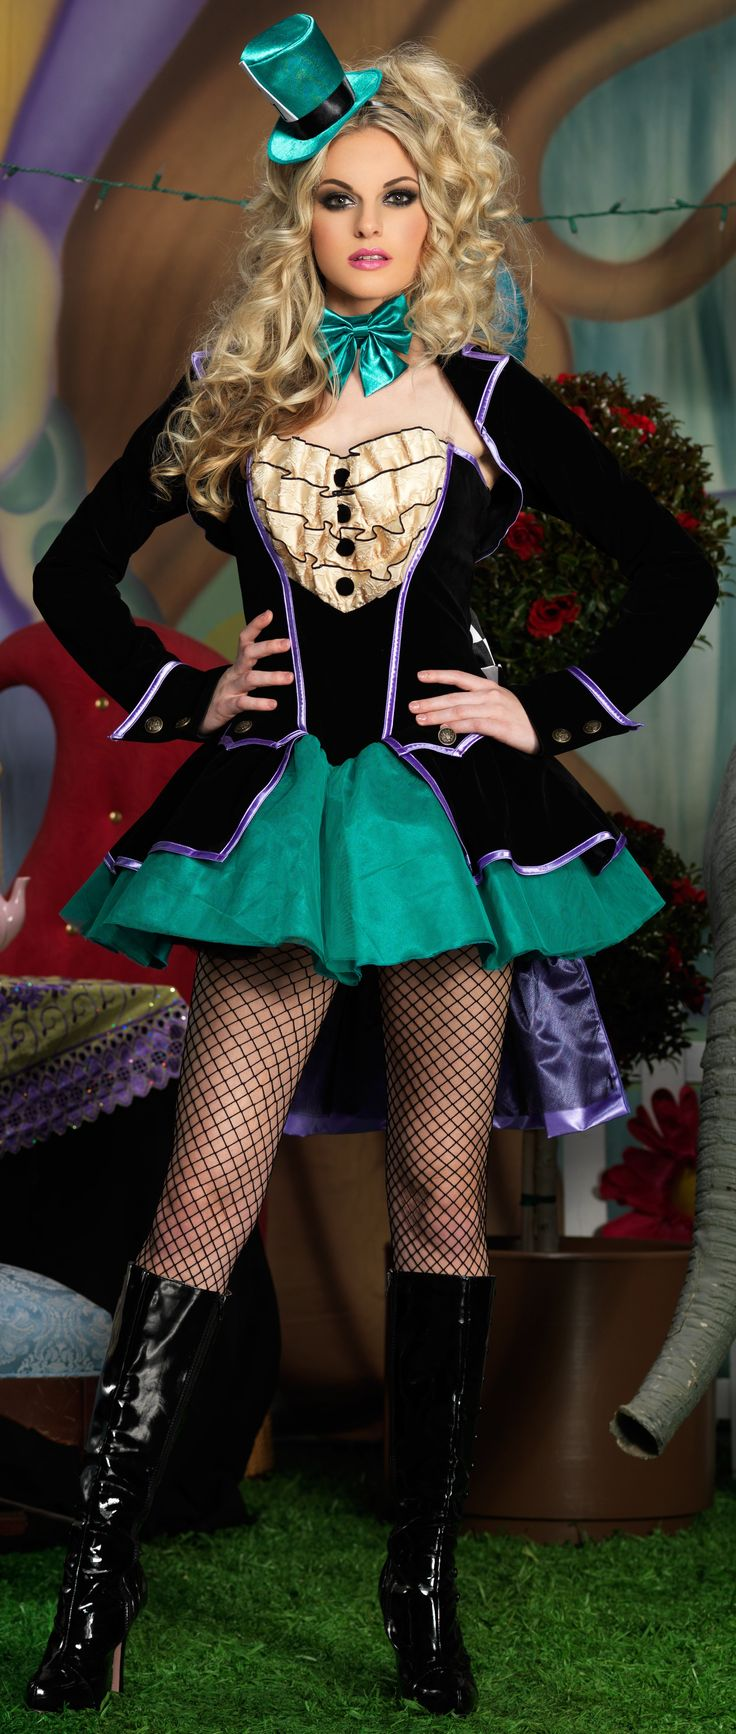 Mischievous Mad Hatter costume!